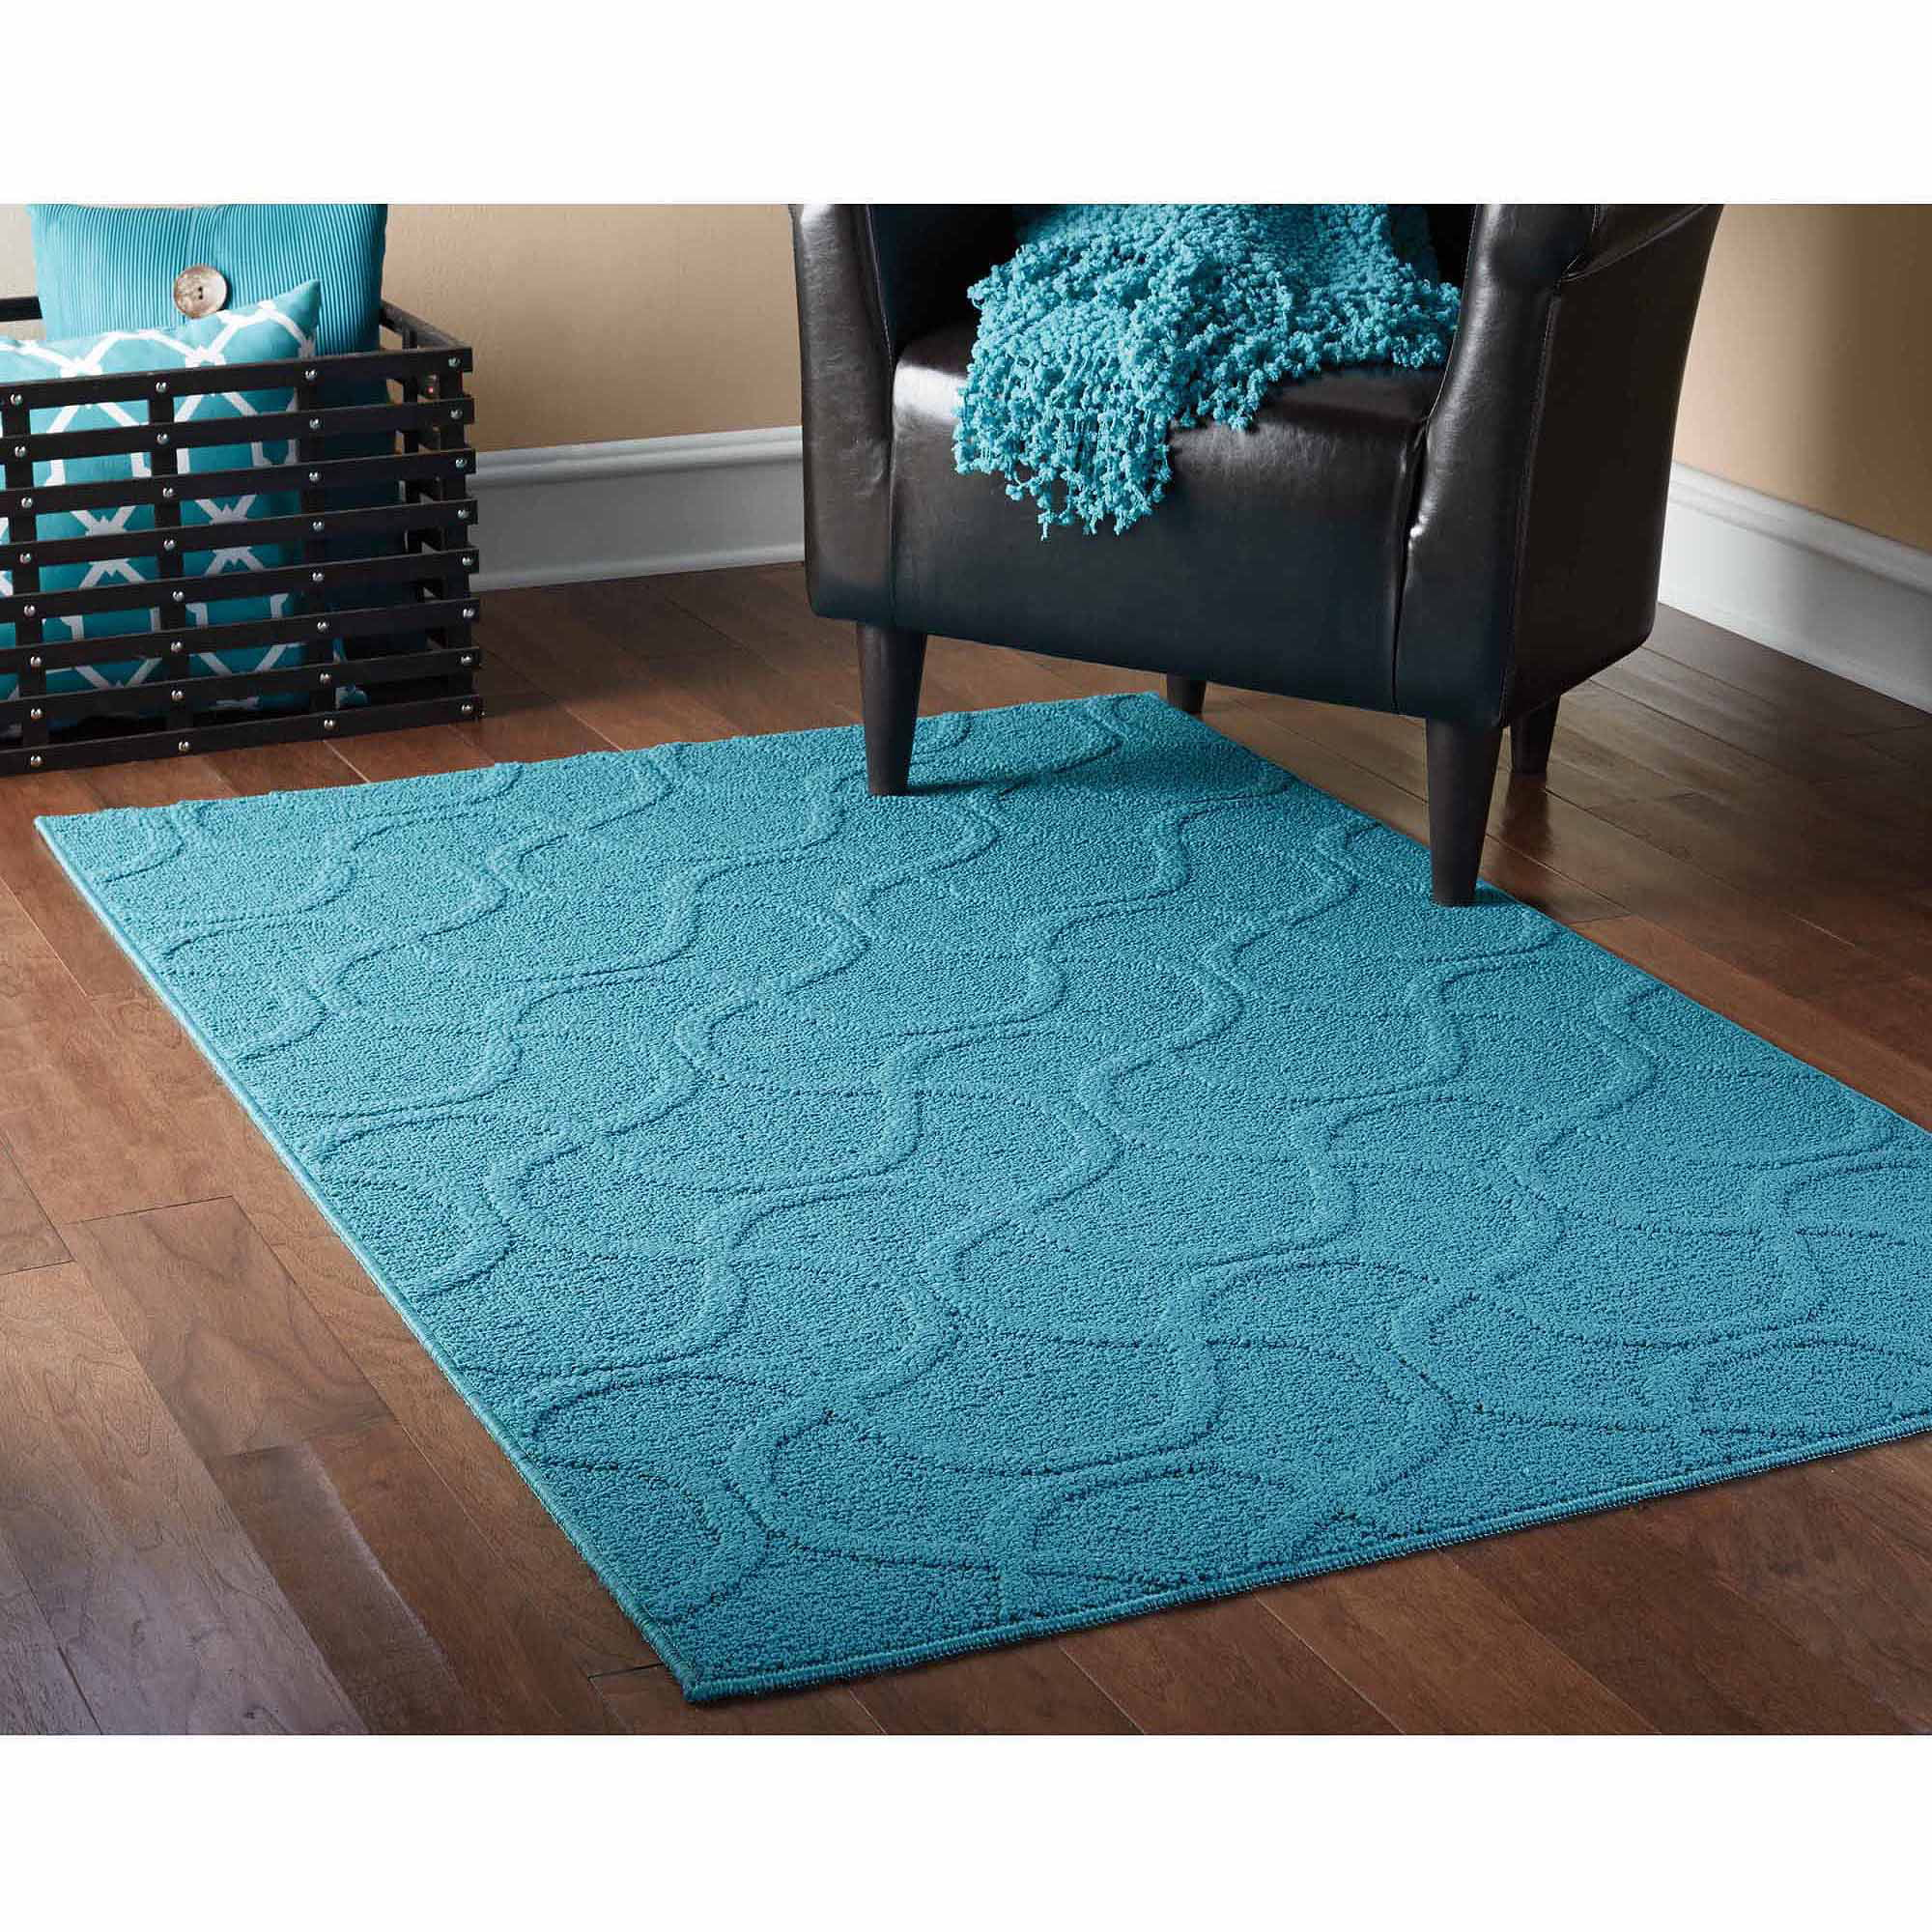 Teal Color Area Rugs Mainstays Fancy Fret Area Rug